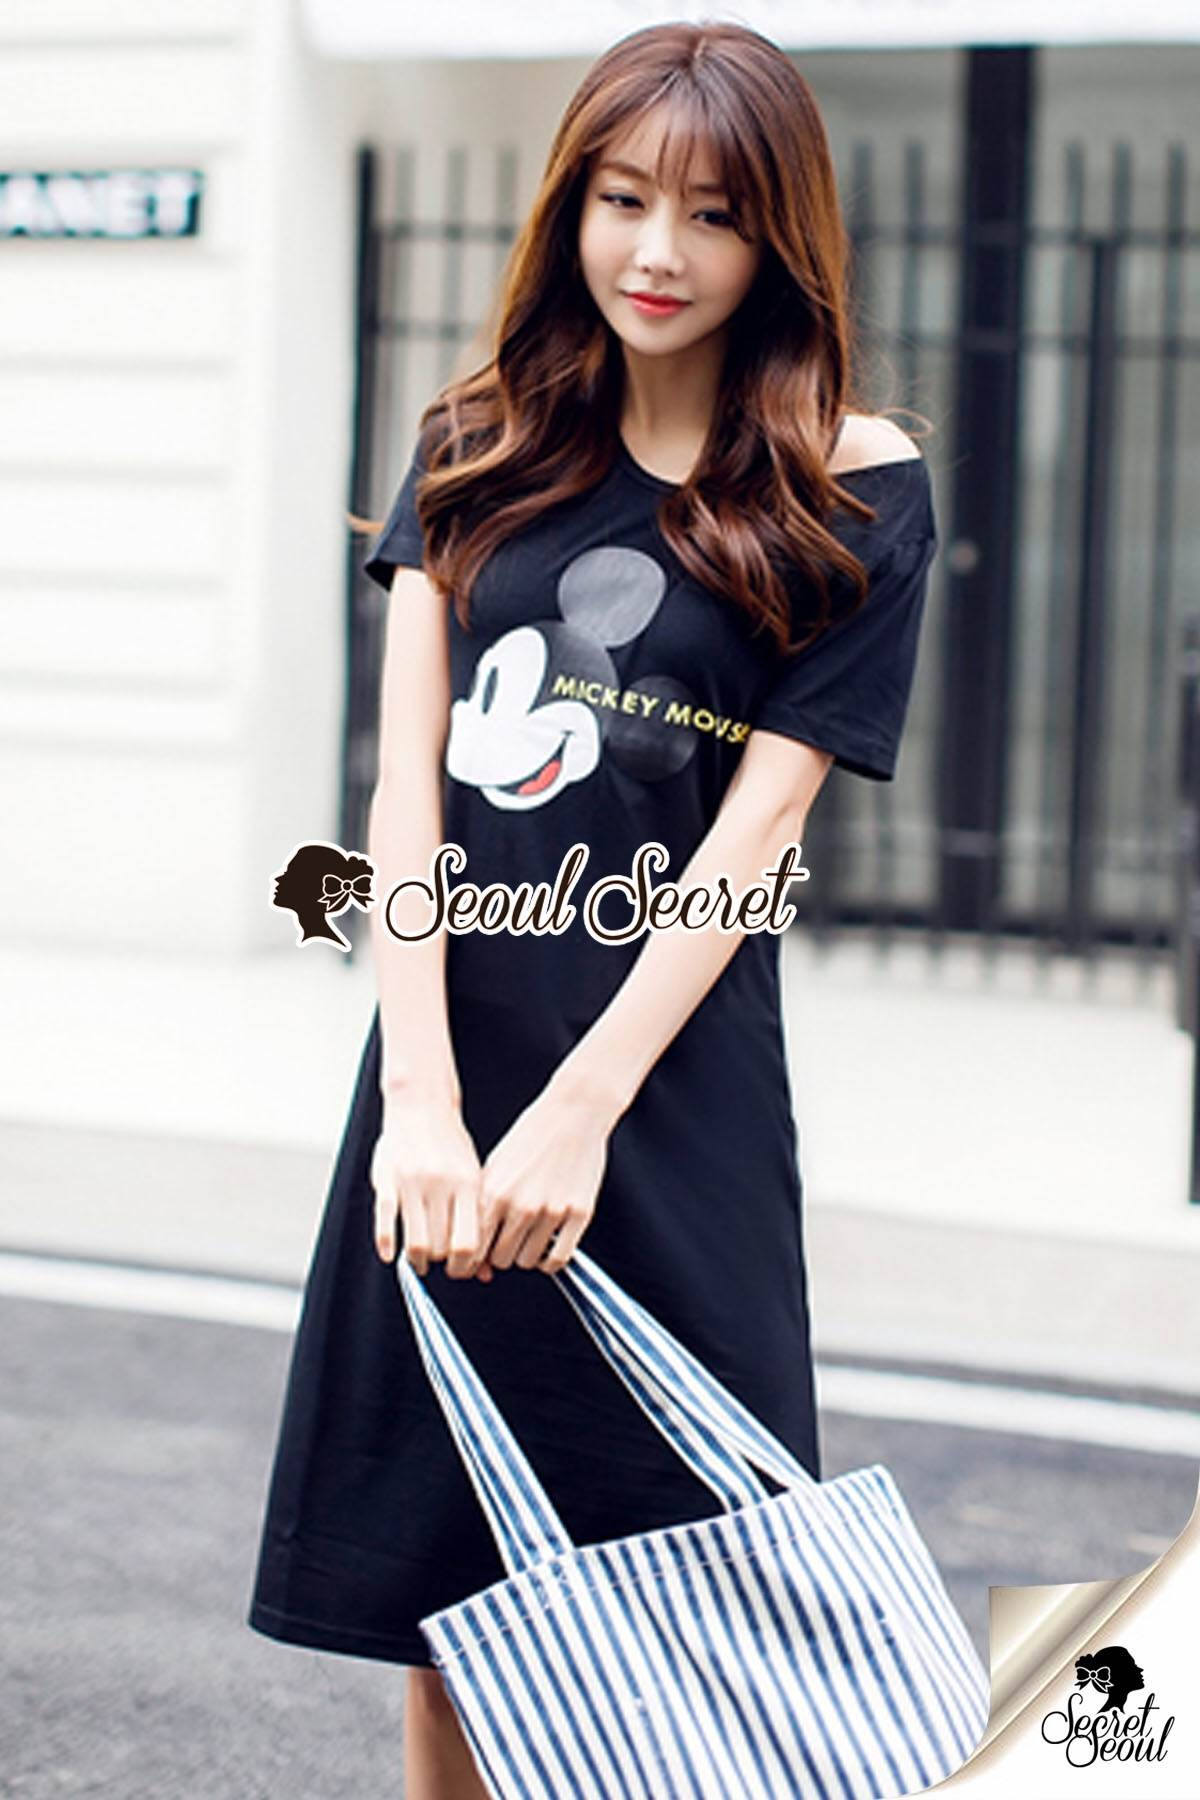 Seoul Secret Say's... We Love Mickey Black Dress